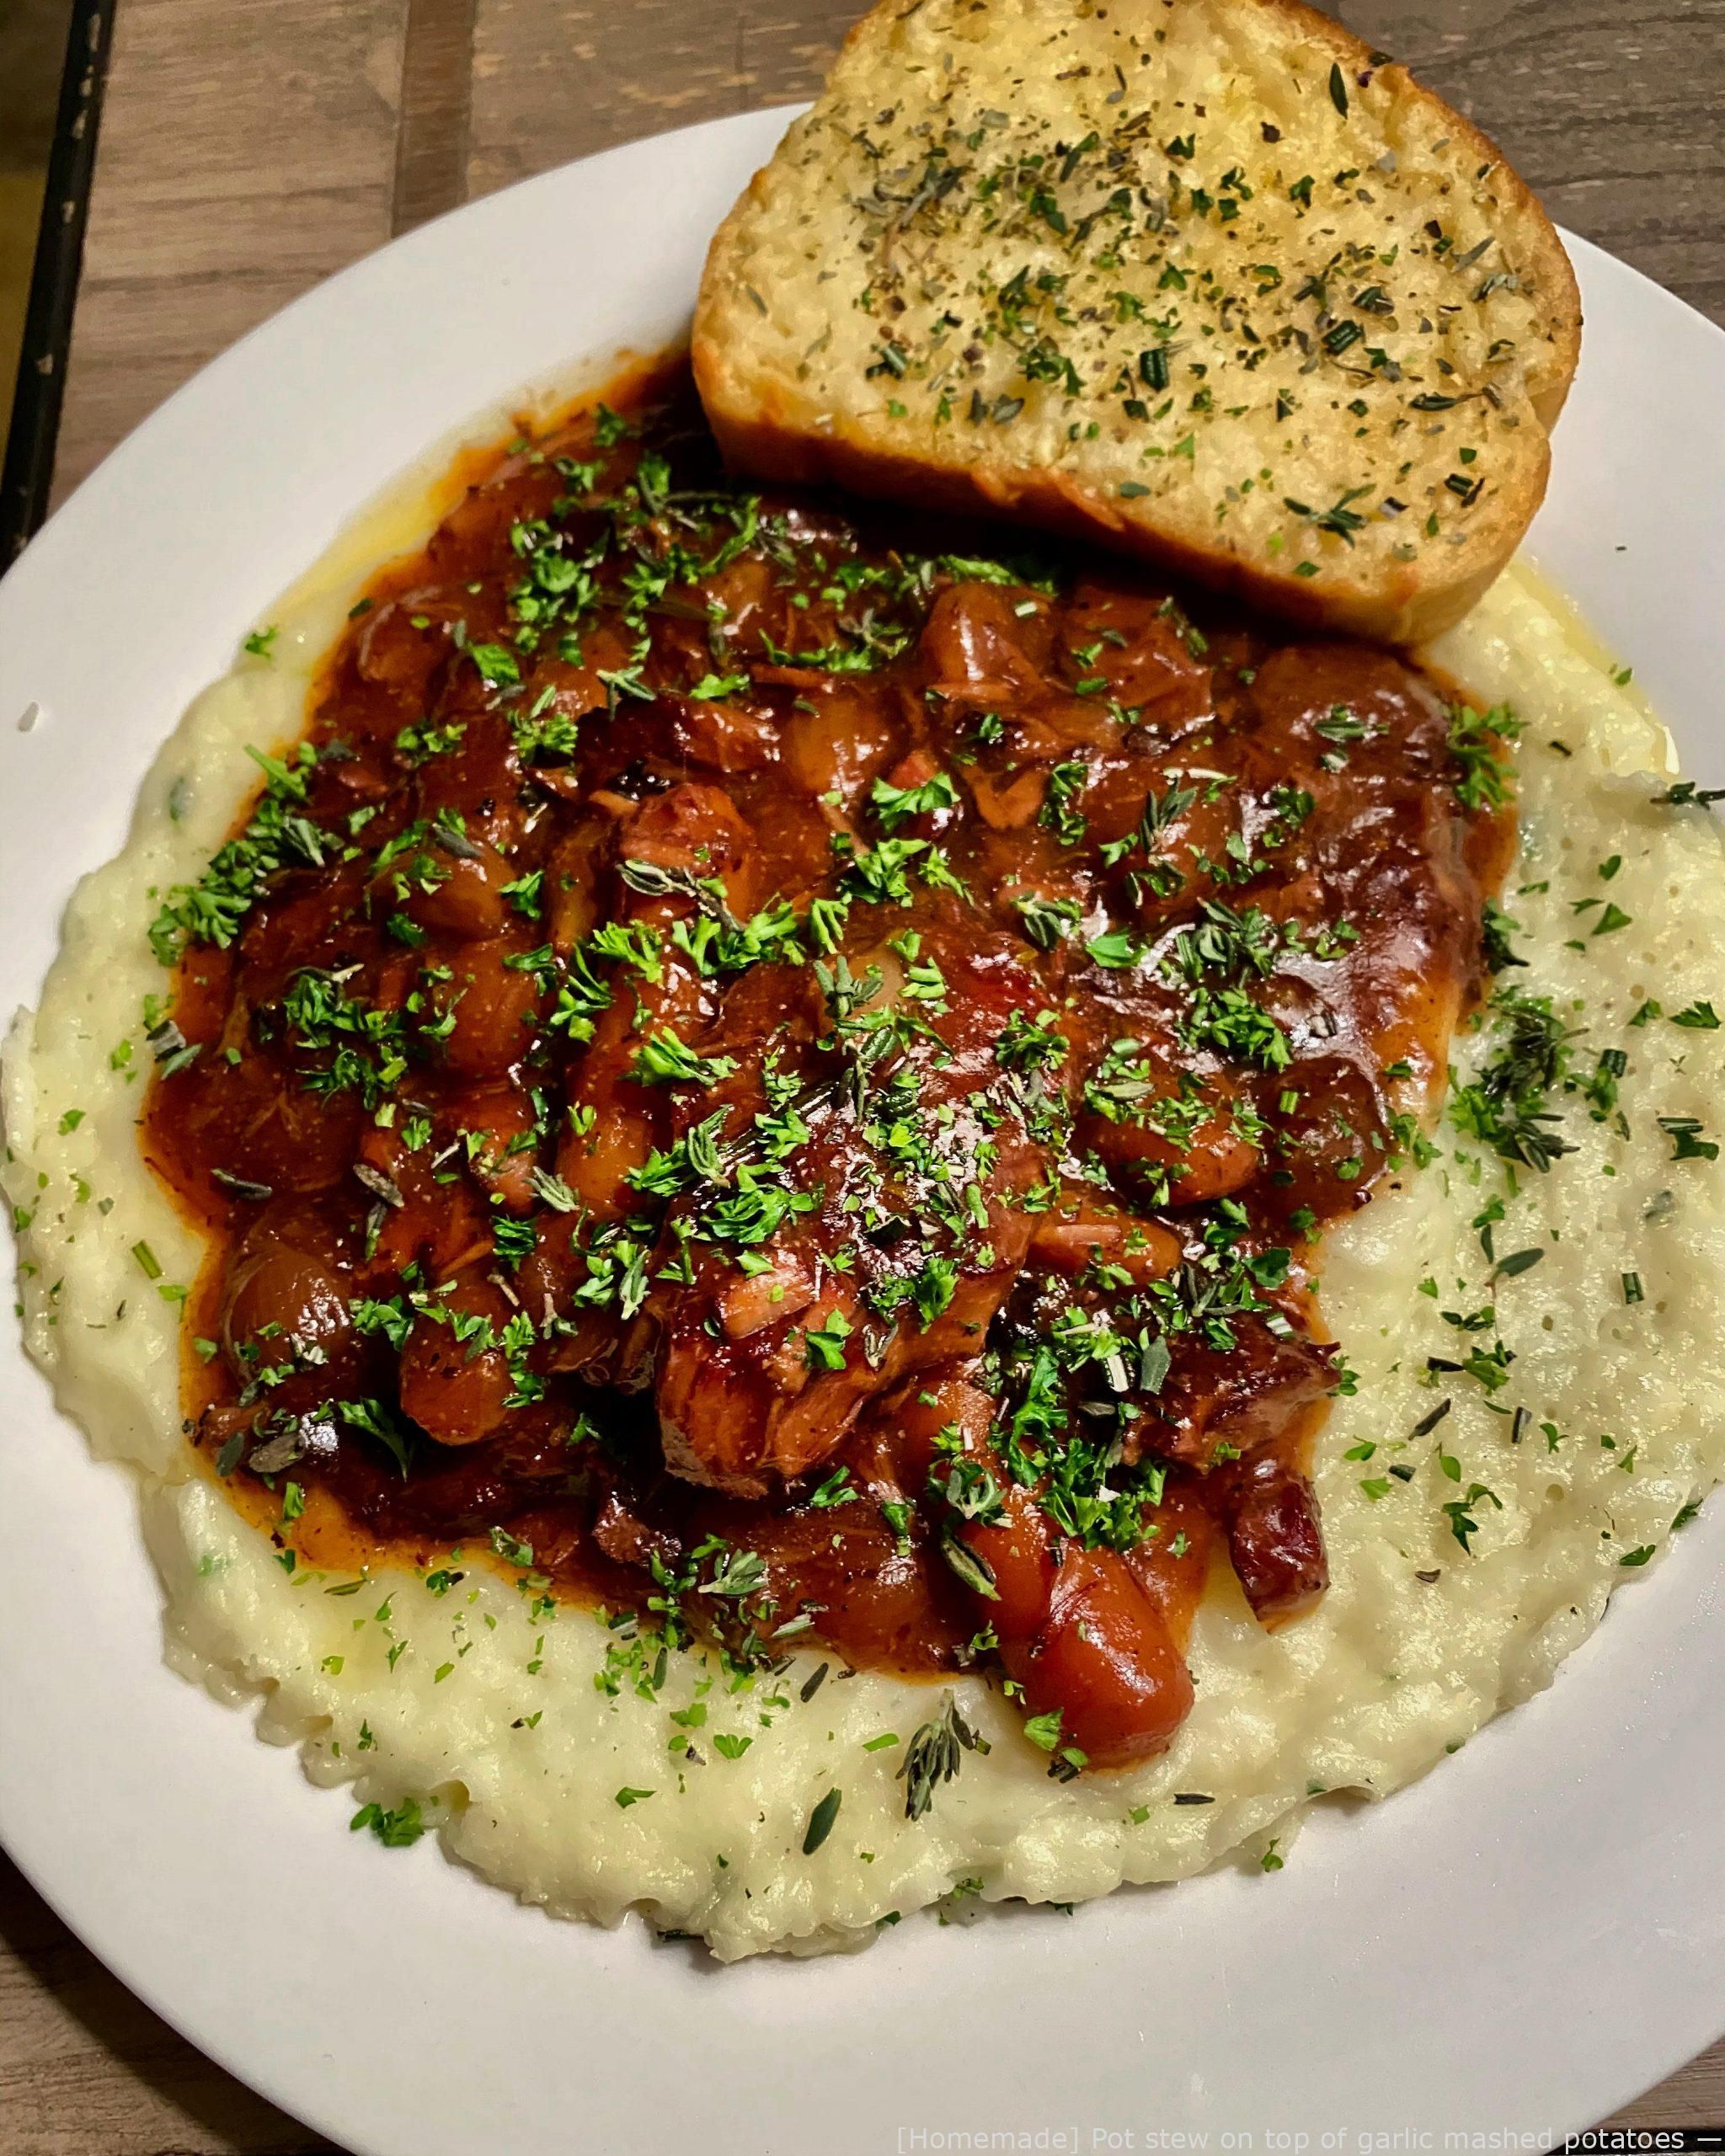 #Cooking  - [Homemade] Pot stew on major of garlic mashed potatoes – youthful #fitness food , #food...